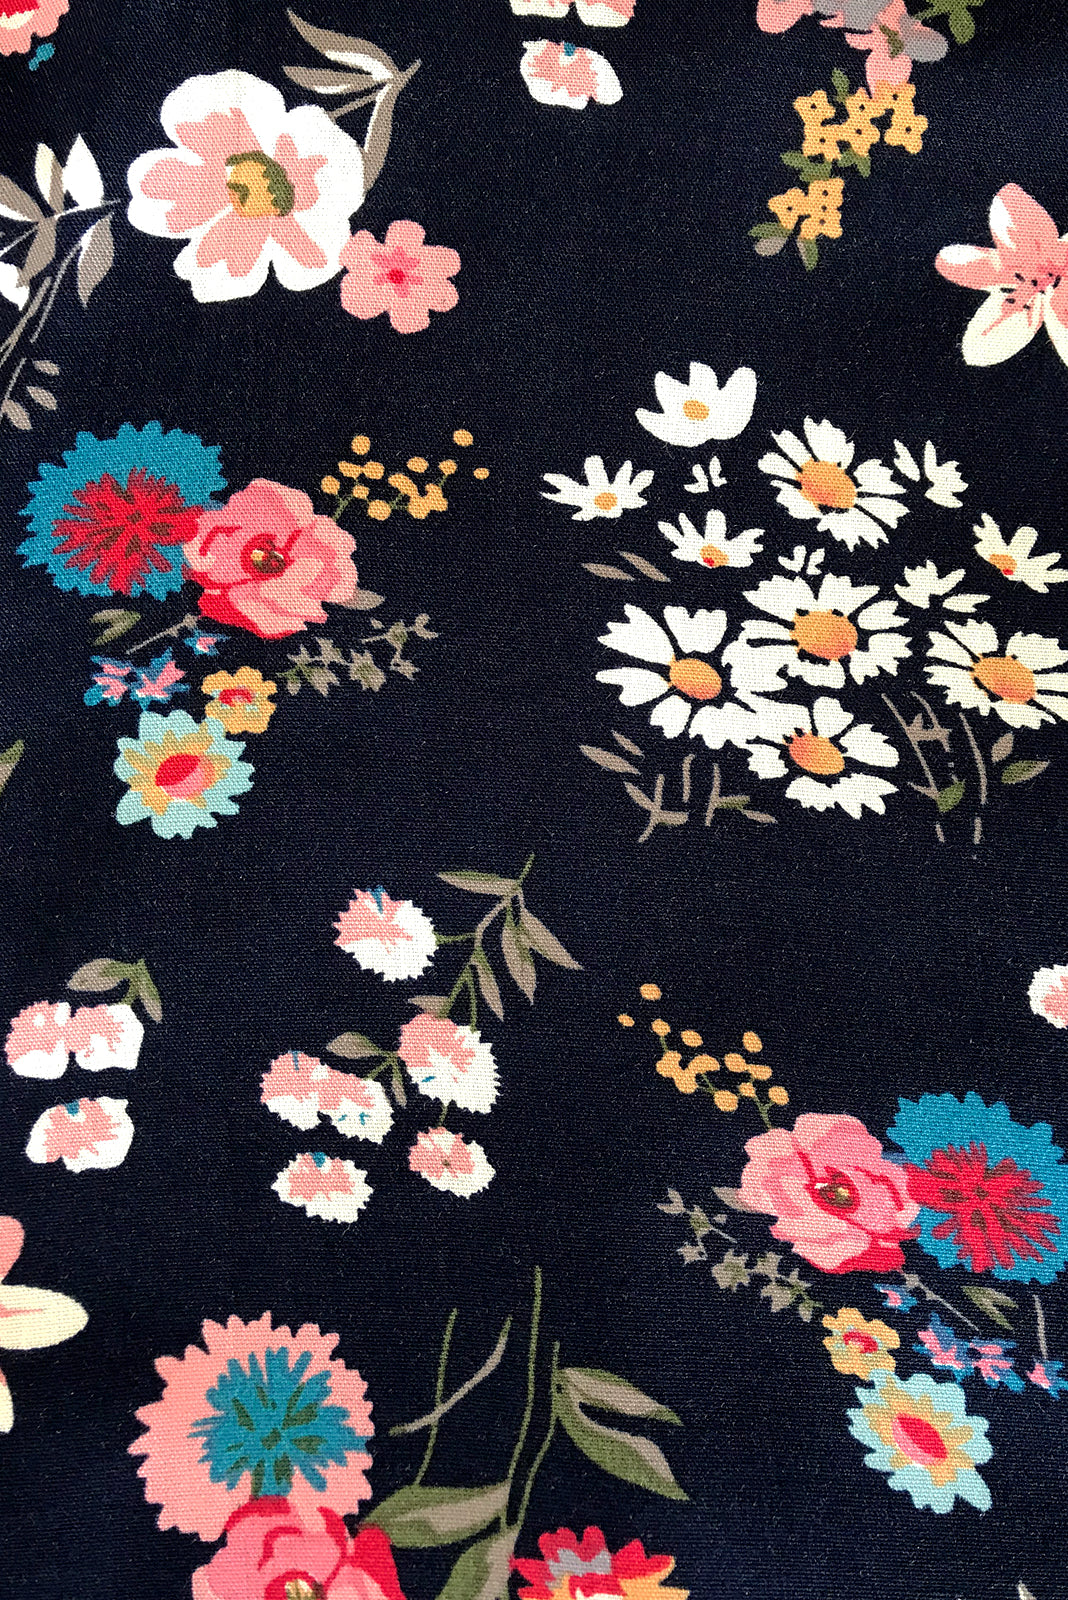 Fabric Swatch of Day Tripper Newport Navy Top featuring 100% viscose in navy base with sweet floral print.